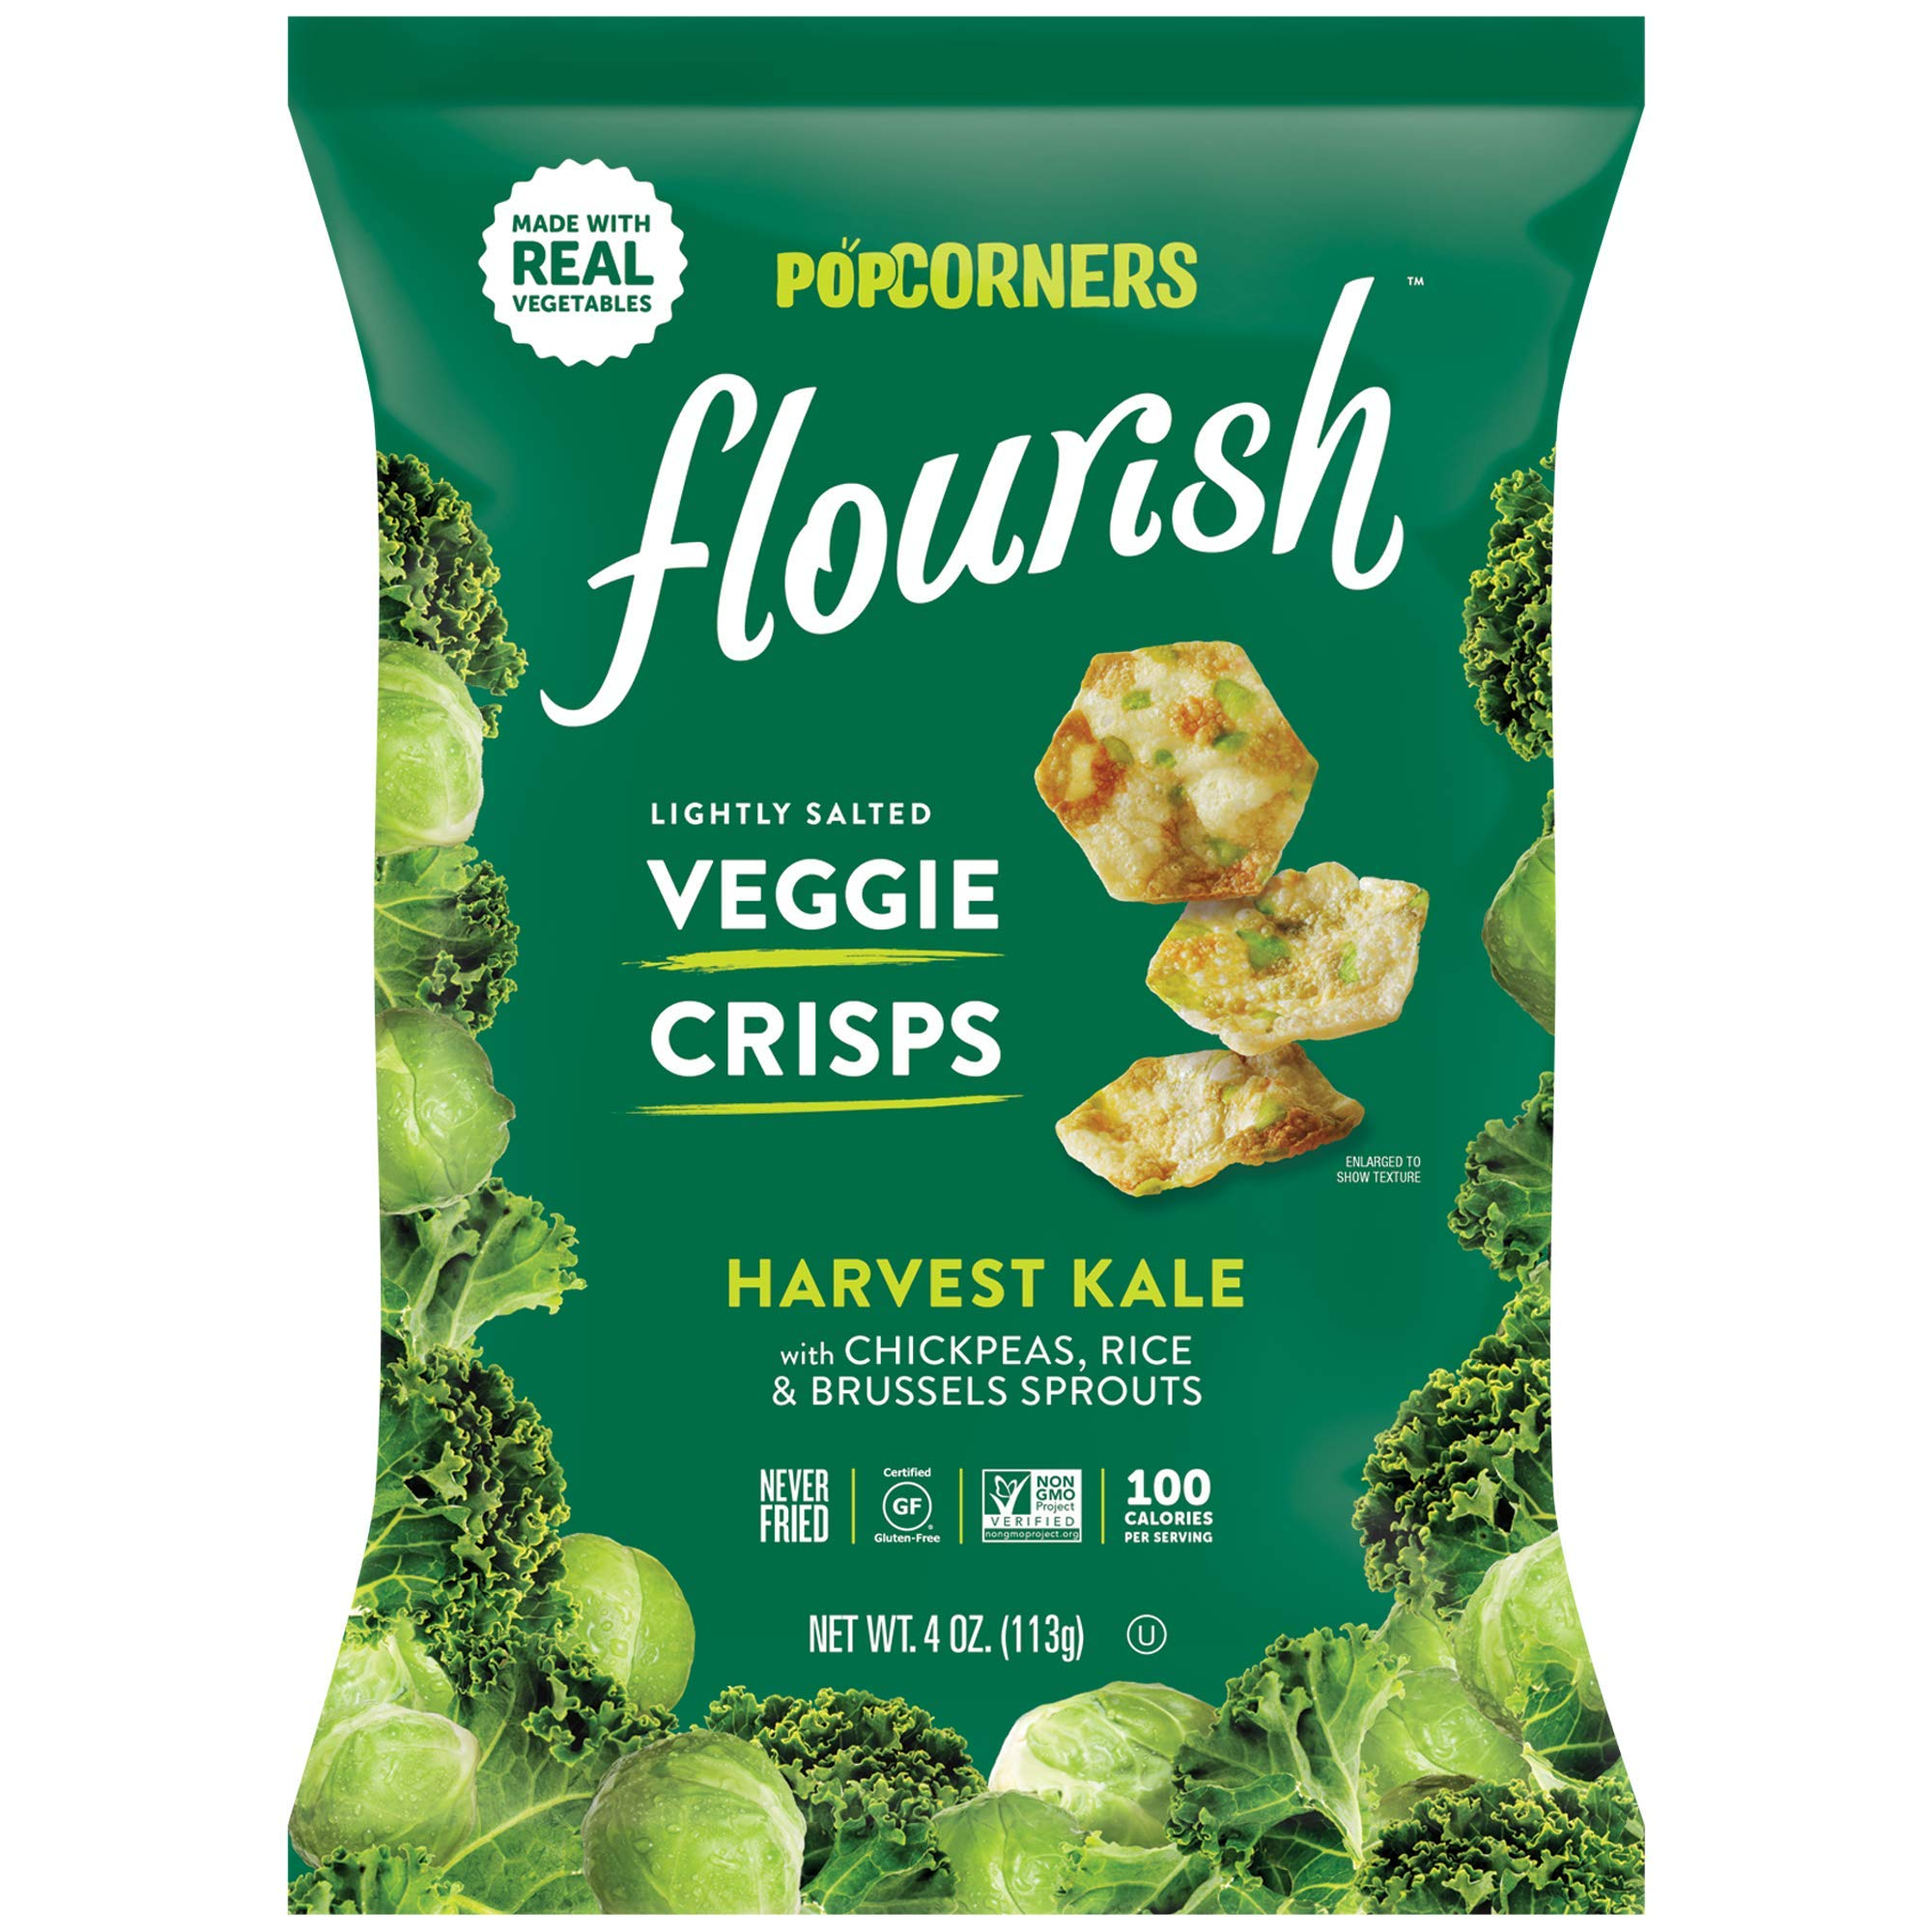 Popcorners Flourish Harvest Kale Veggie Crisps | Plant-Based Protein, Gluten Free Snacks | (12 Pack, 4 oz Snack Bags) by Popcorners